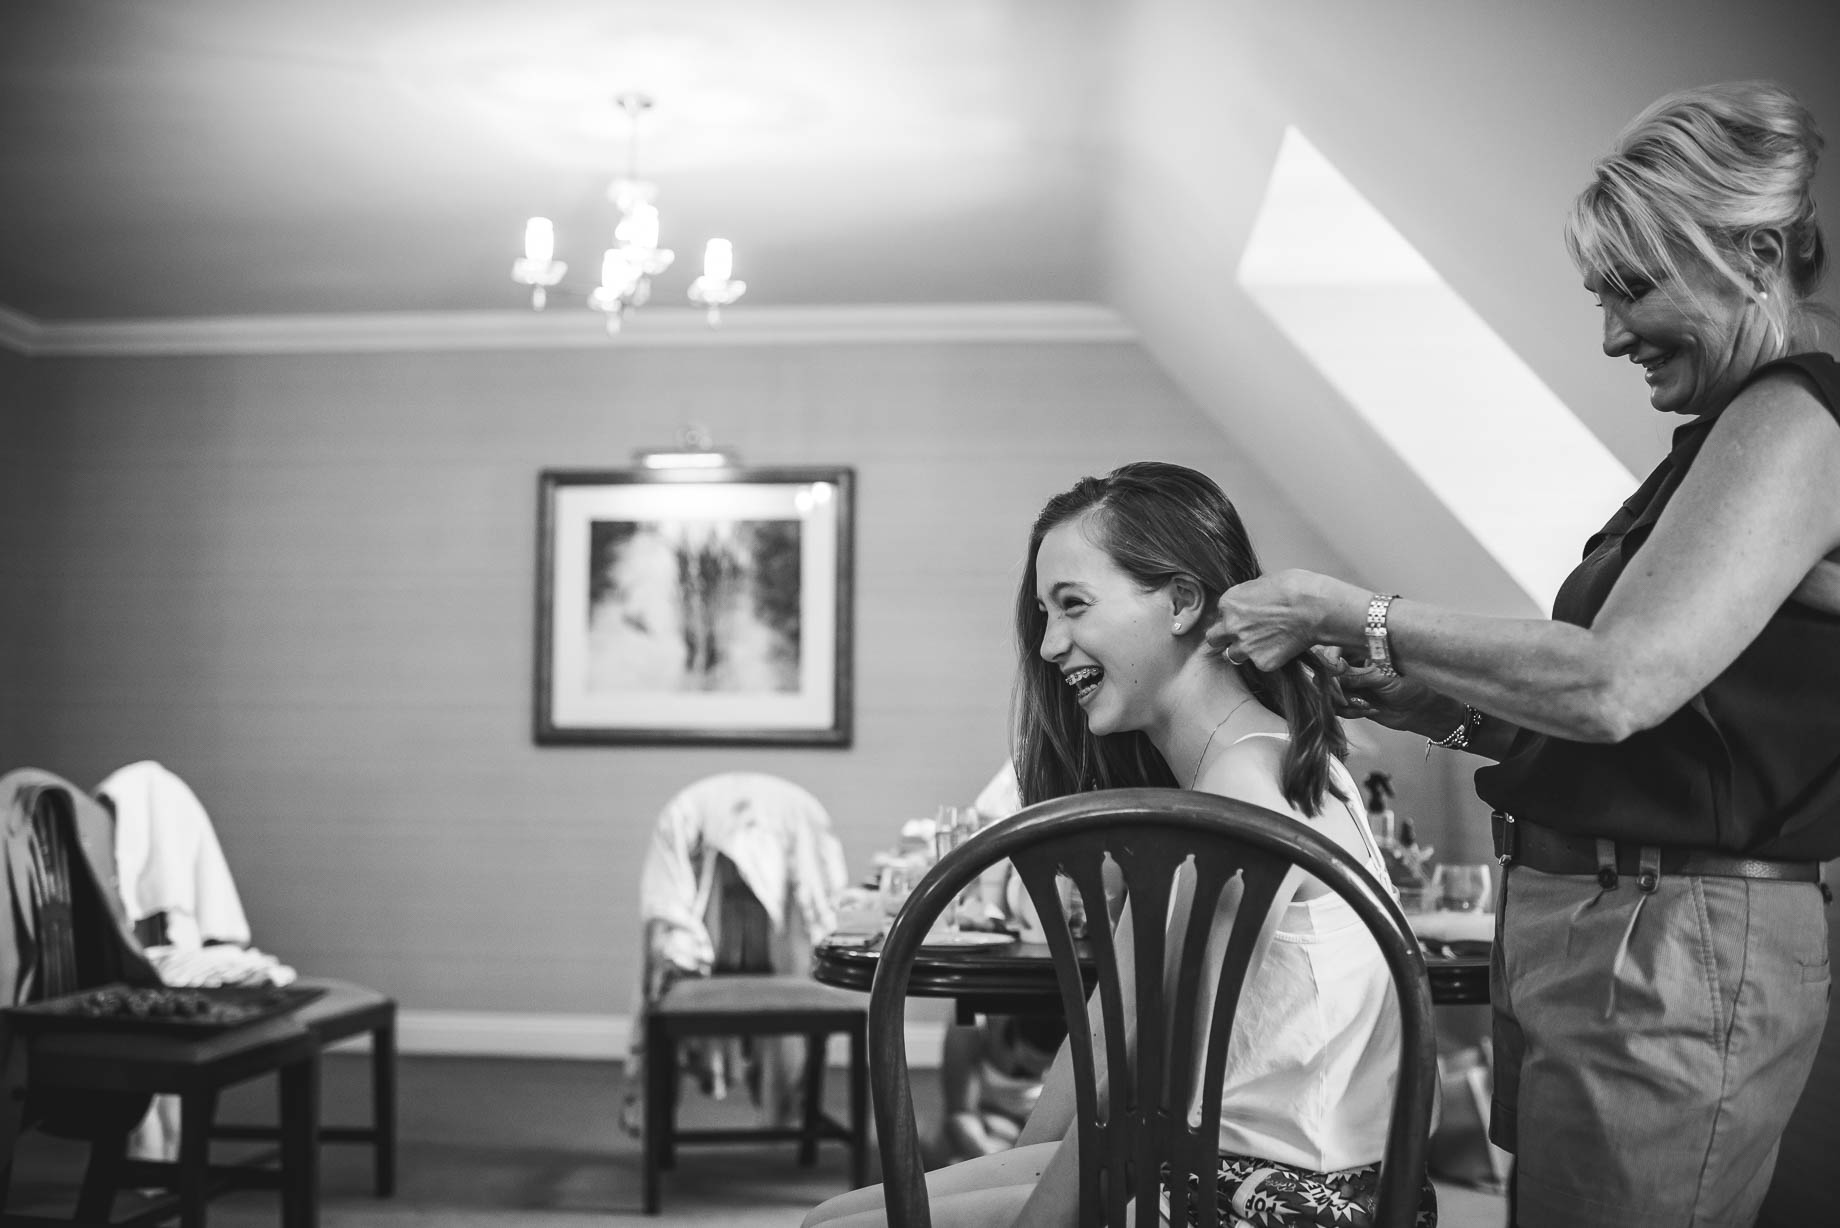 Luton Hoo wedding photography by Guy Collier Photography - Lauren and Gem (4 of 178)